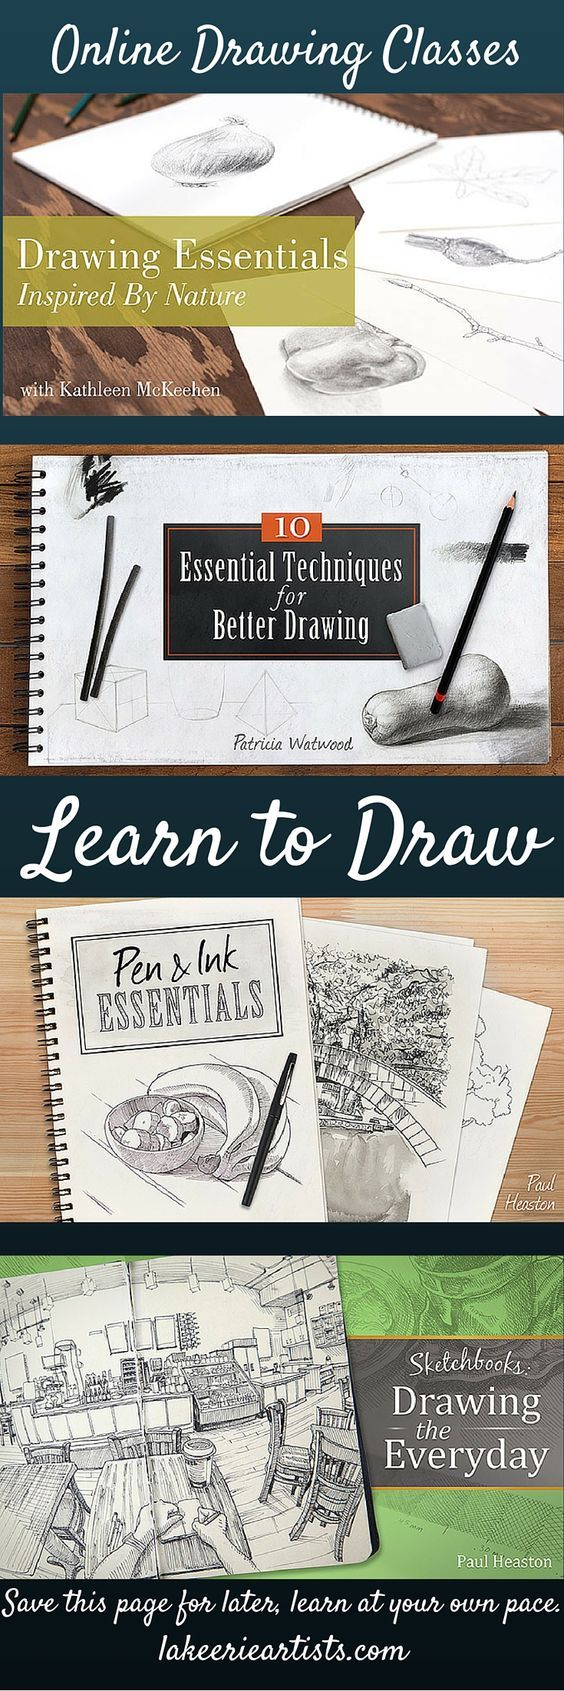 185 best drawing and painting images on pinterest for Learn to paint online